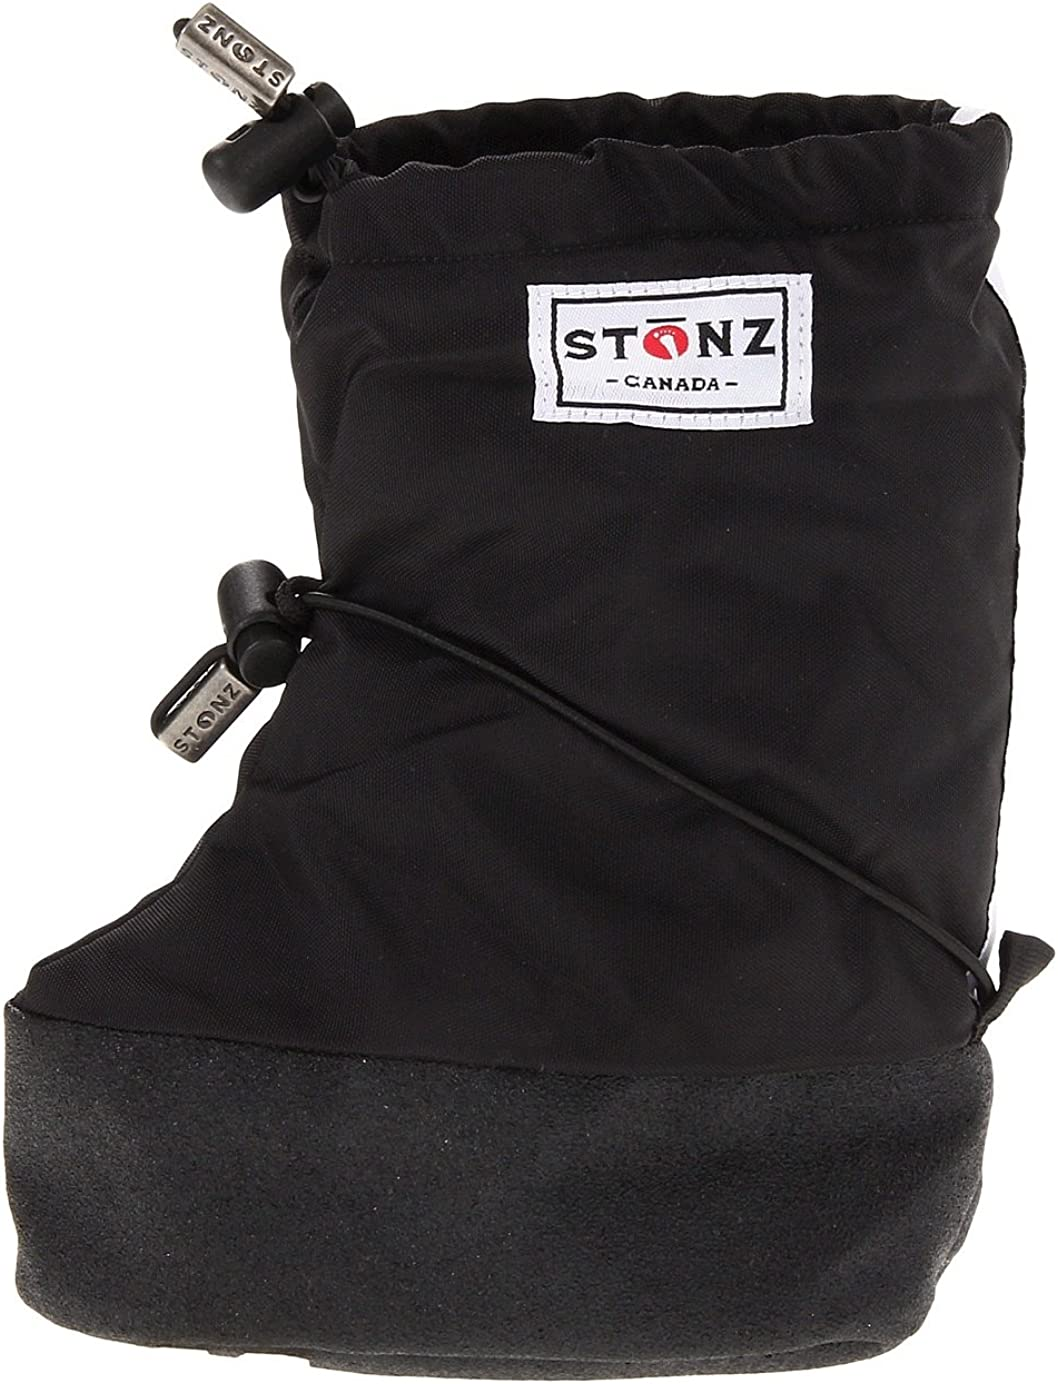 Over Bare Feet or Shoes Three Season Stay-On Snow Boots Stonz Winter Booties Baby//Infant//Toddler Boys and Girls Mild or Cold Weather